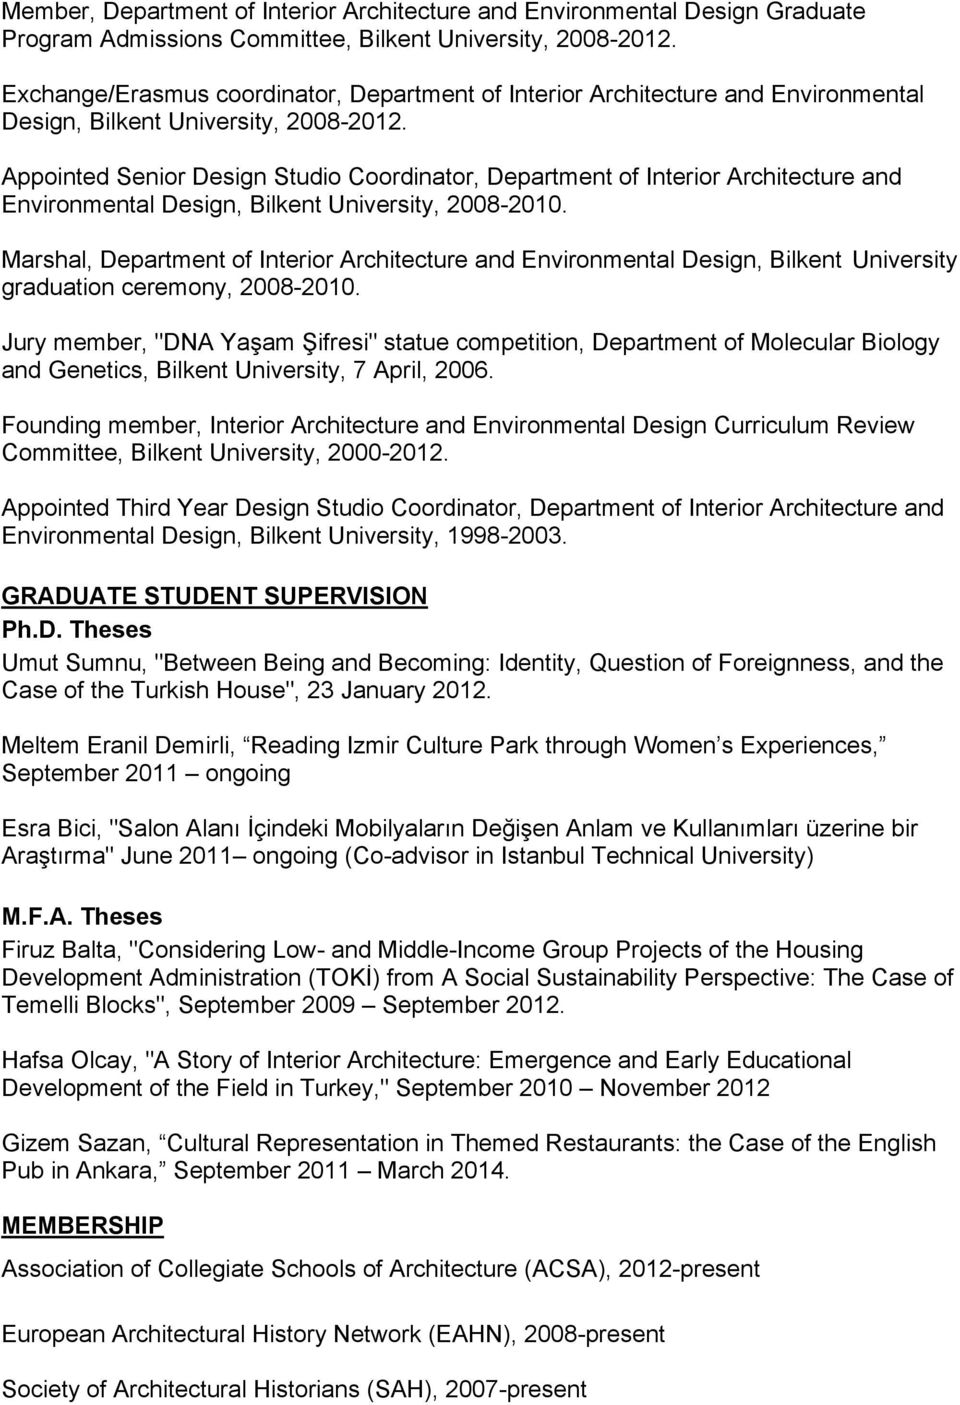 Appointed Senior Design Studio Coordinator, Department of Interior Architecture and Environmental Design, Bilkent University, 2008-2010.